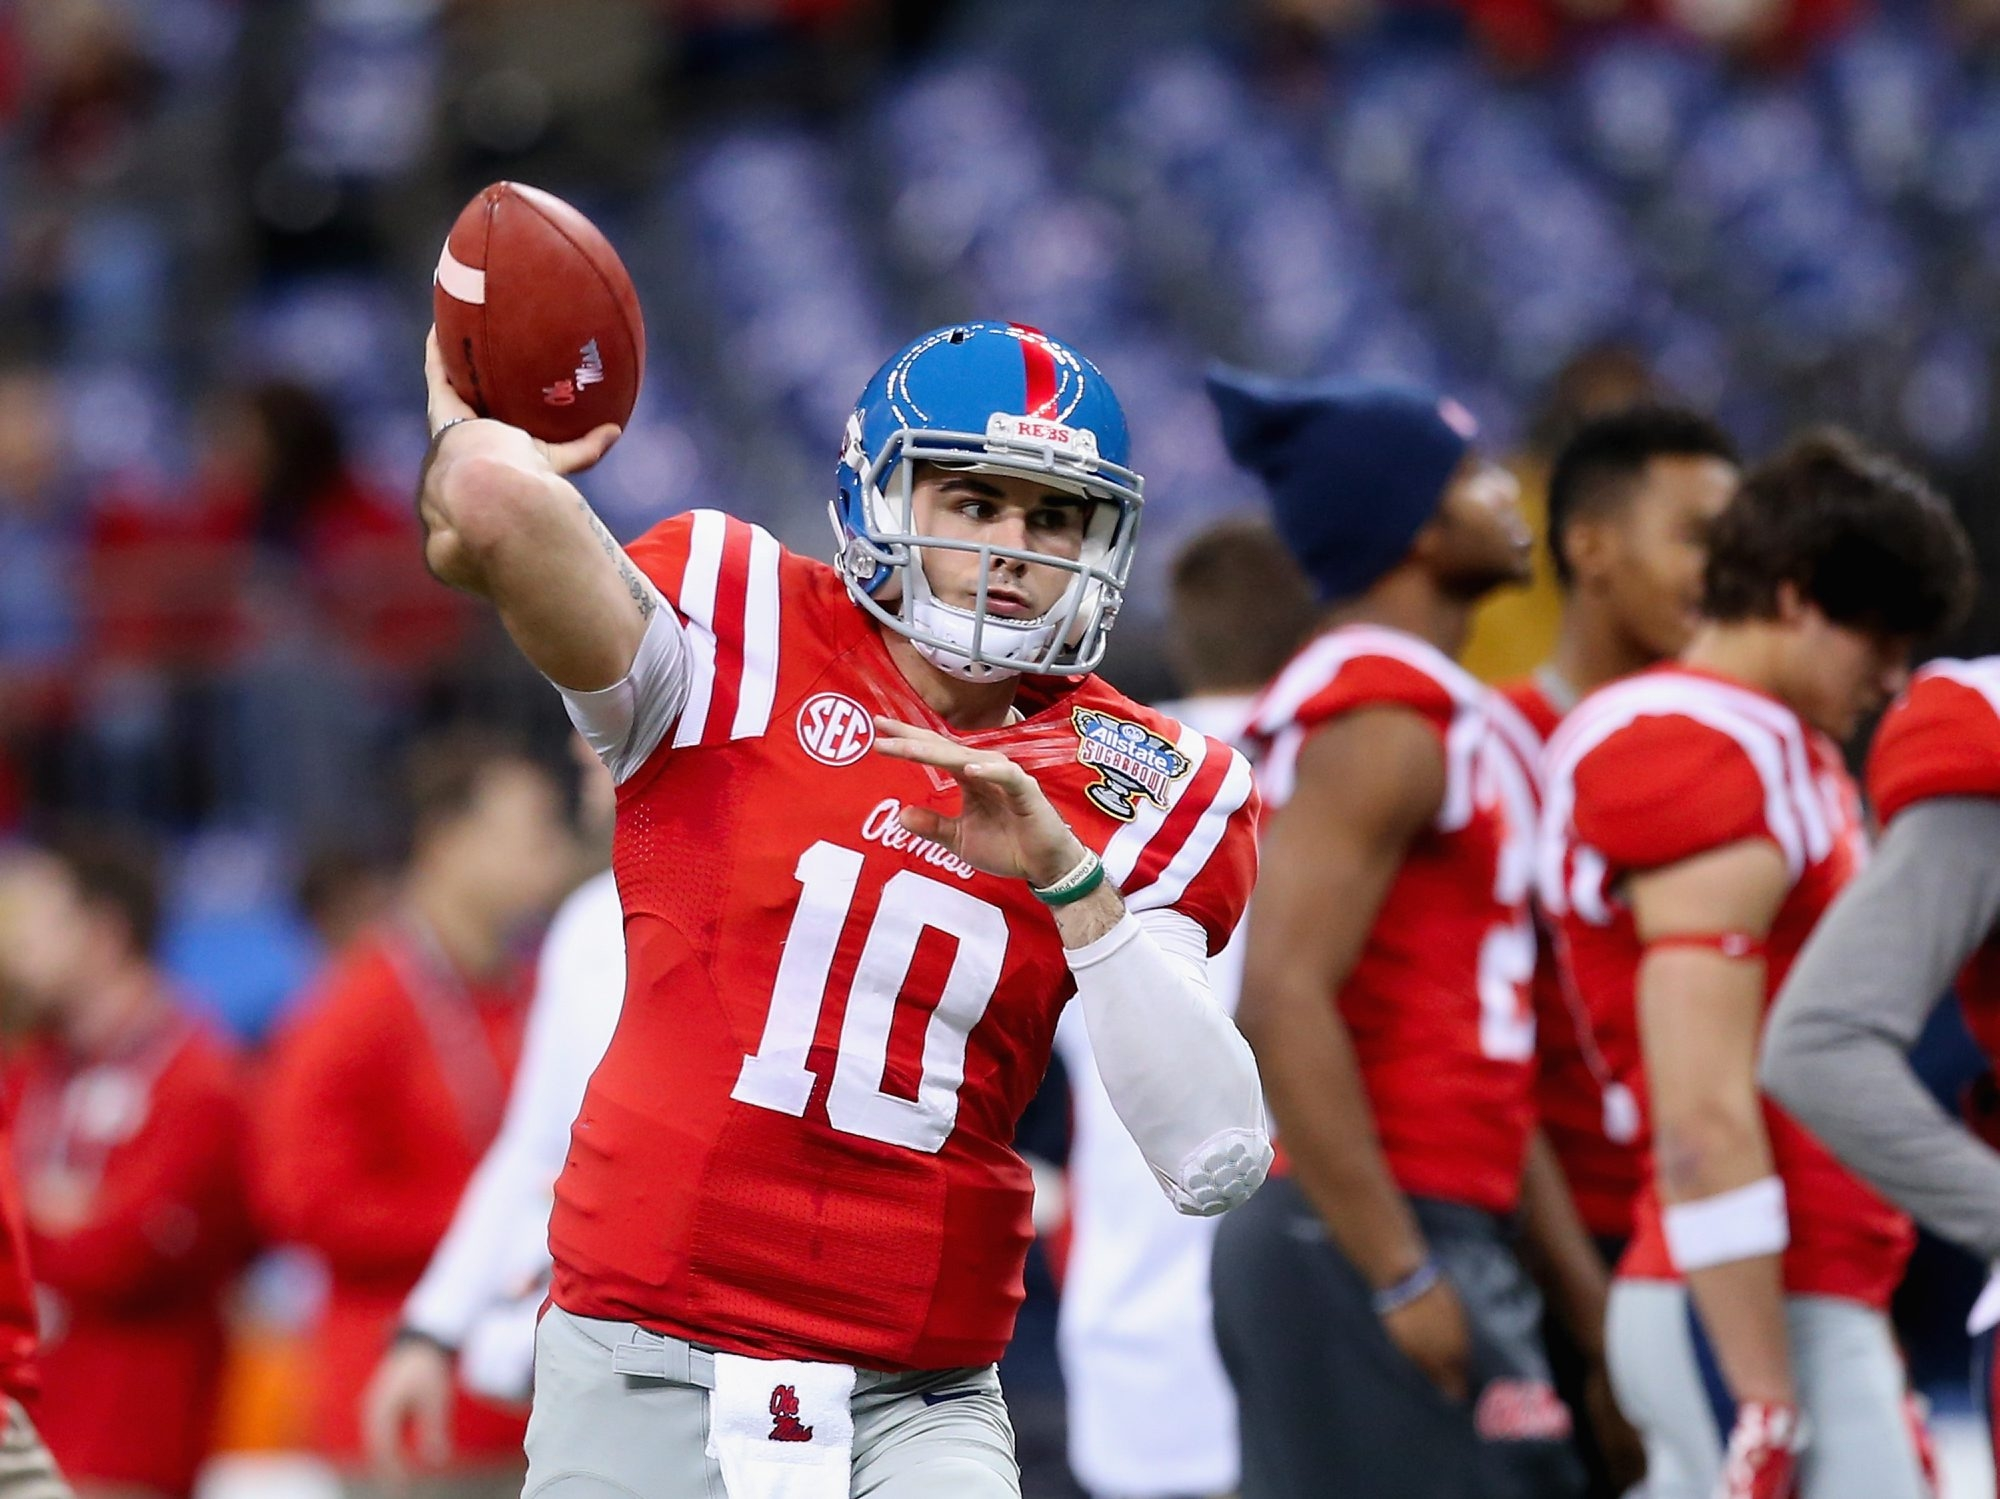 Quarterback Chad Kelly may have caught the fancy of an NFL team had he come out for the draft.